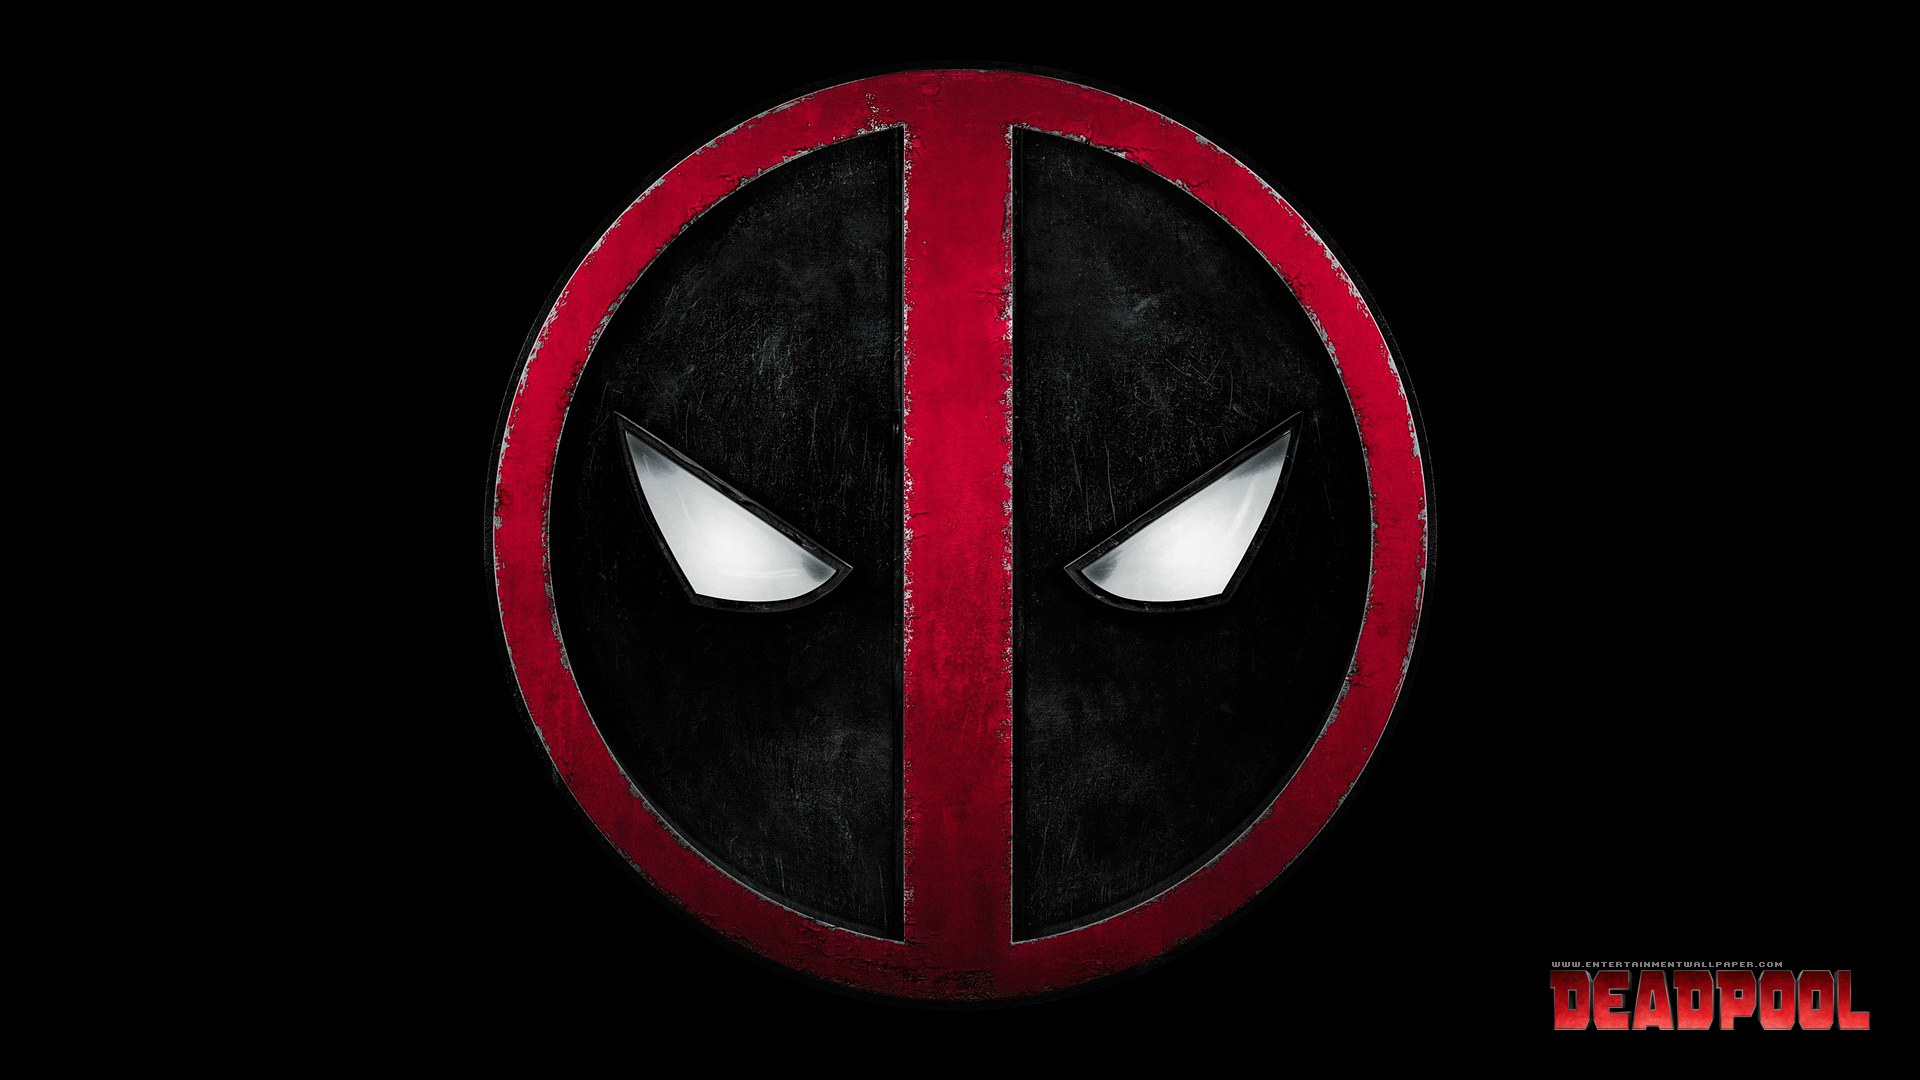 deadpool wallpapers, pictures, images